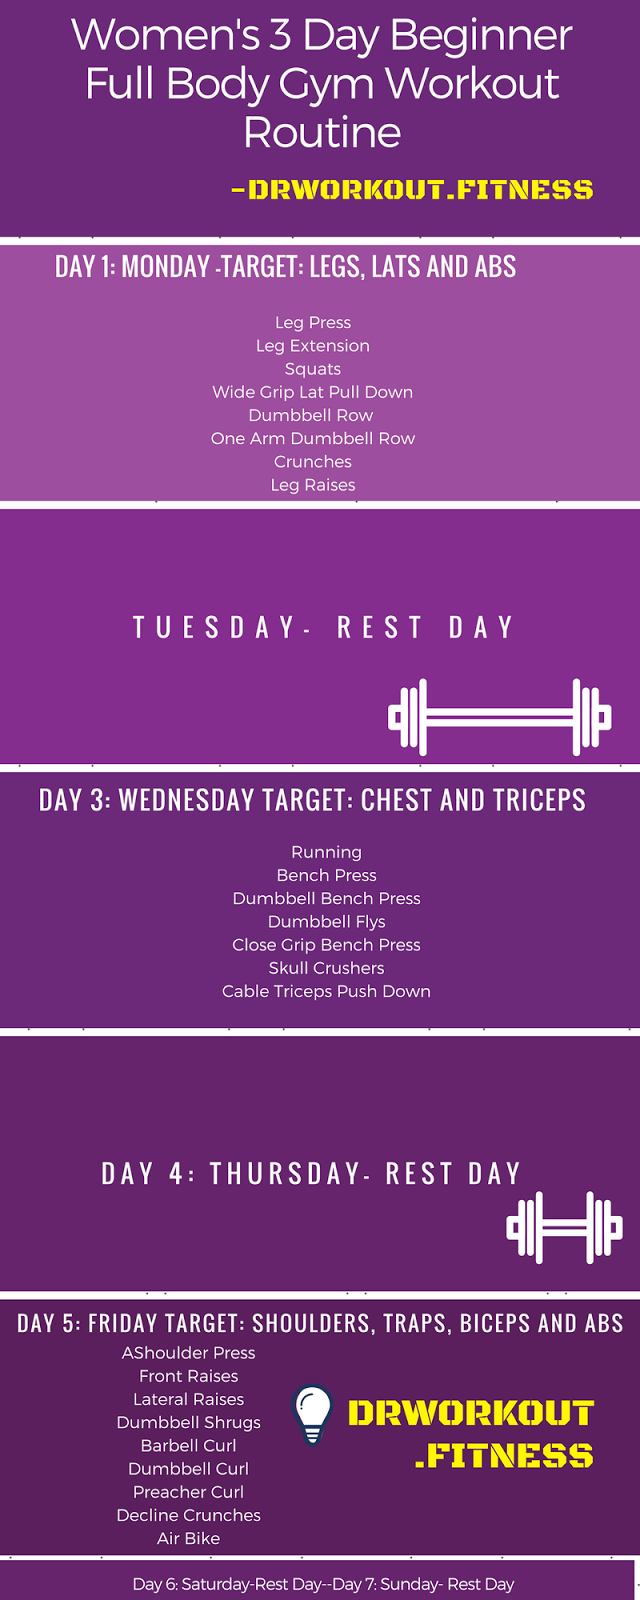 Women's 3 Day Beginner Full Body Gym Workout Routine